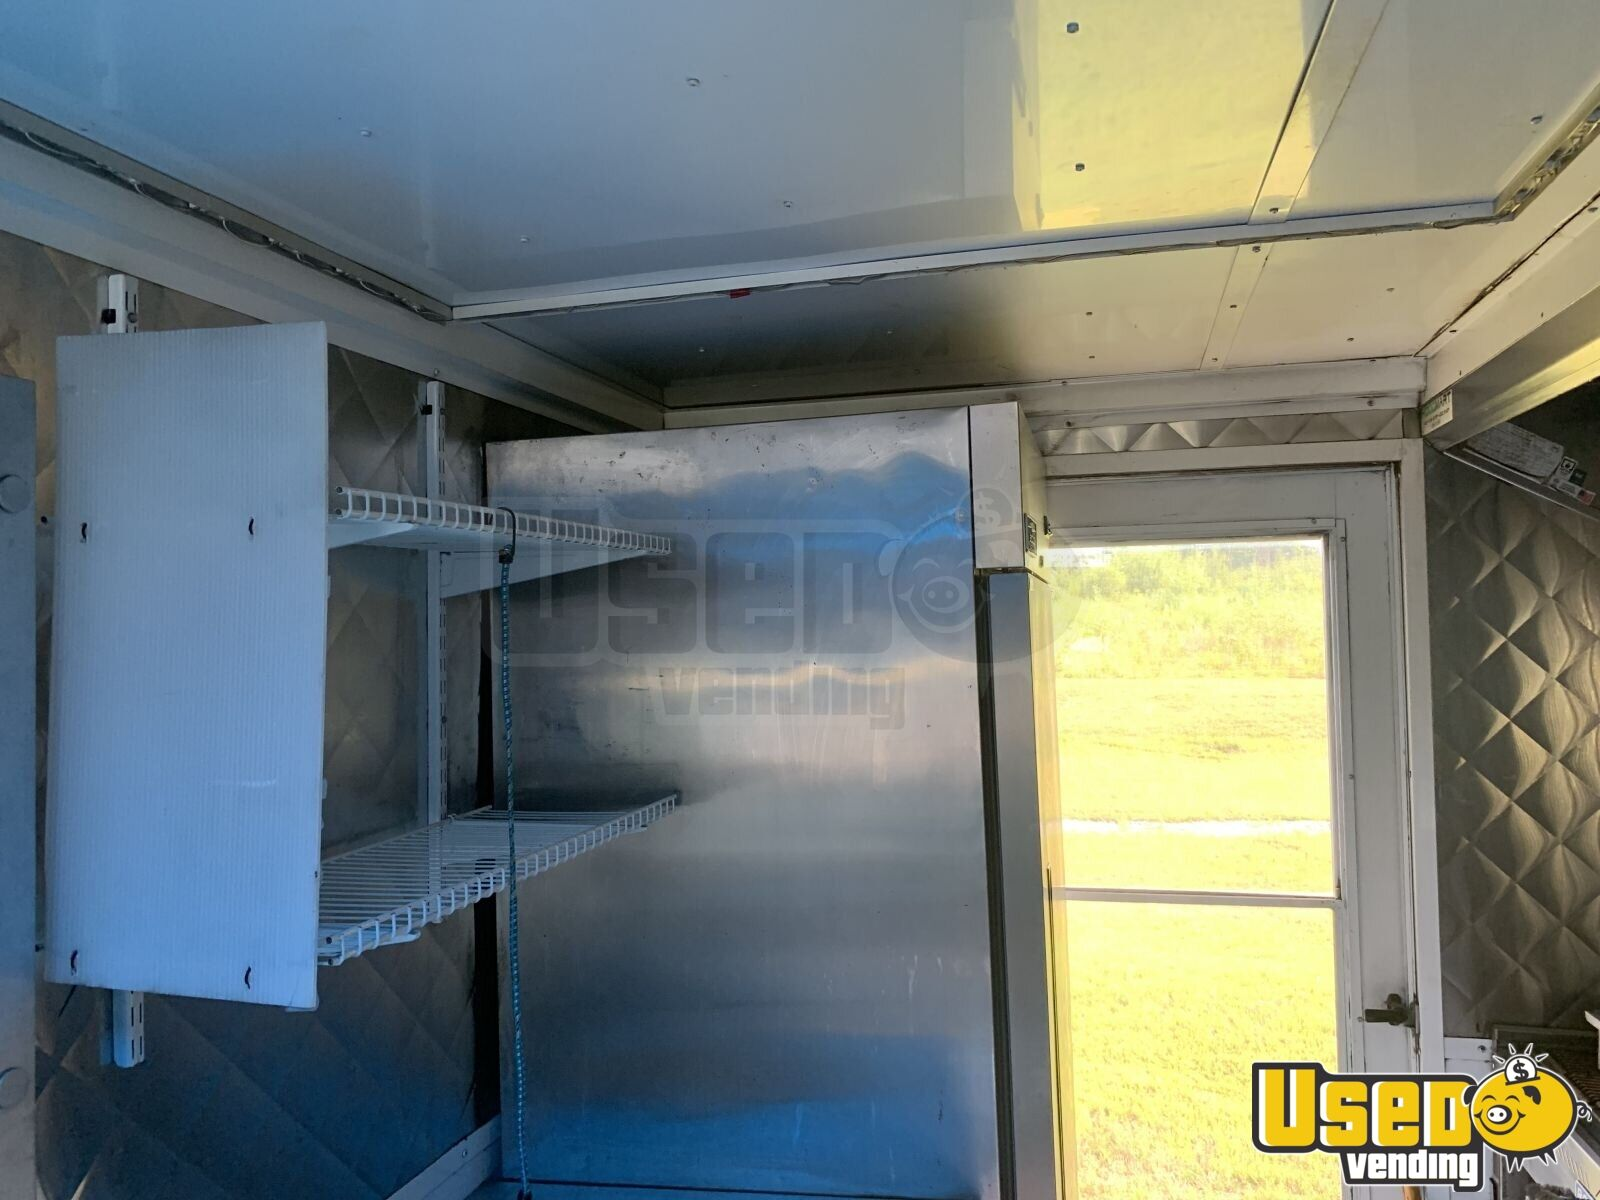 2005 28' Diesel All-purpose Food Truck Interior Lighting New York Diesel Engine for Sale - 28